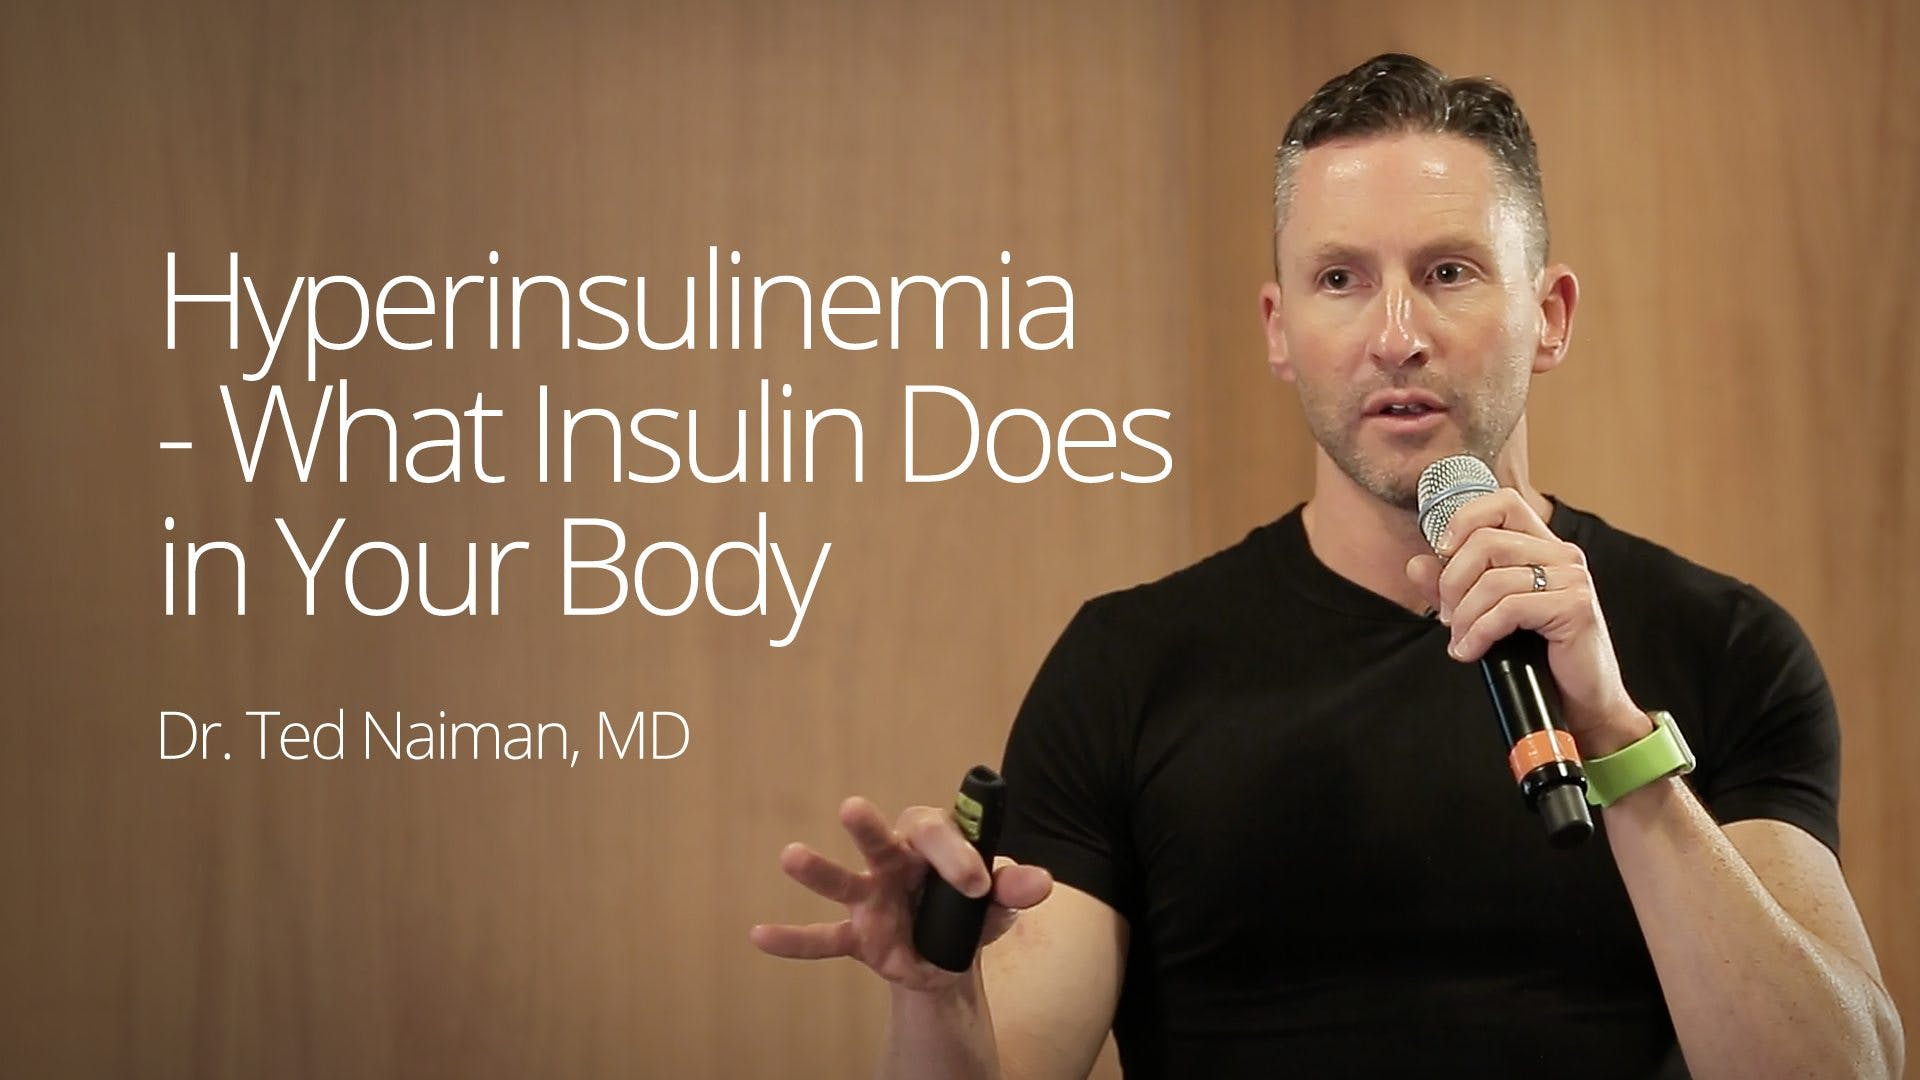 Hyperinsulinemia - What Insulin Does in Your Body